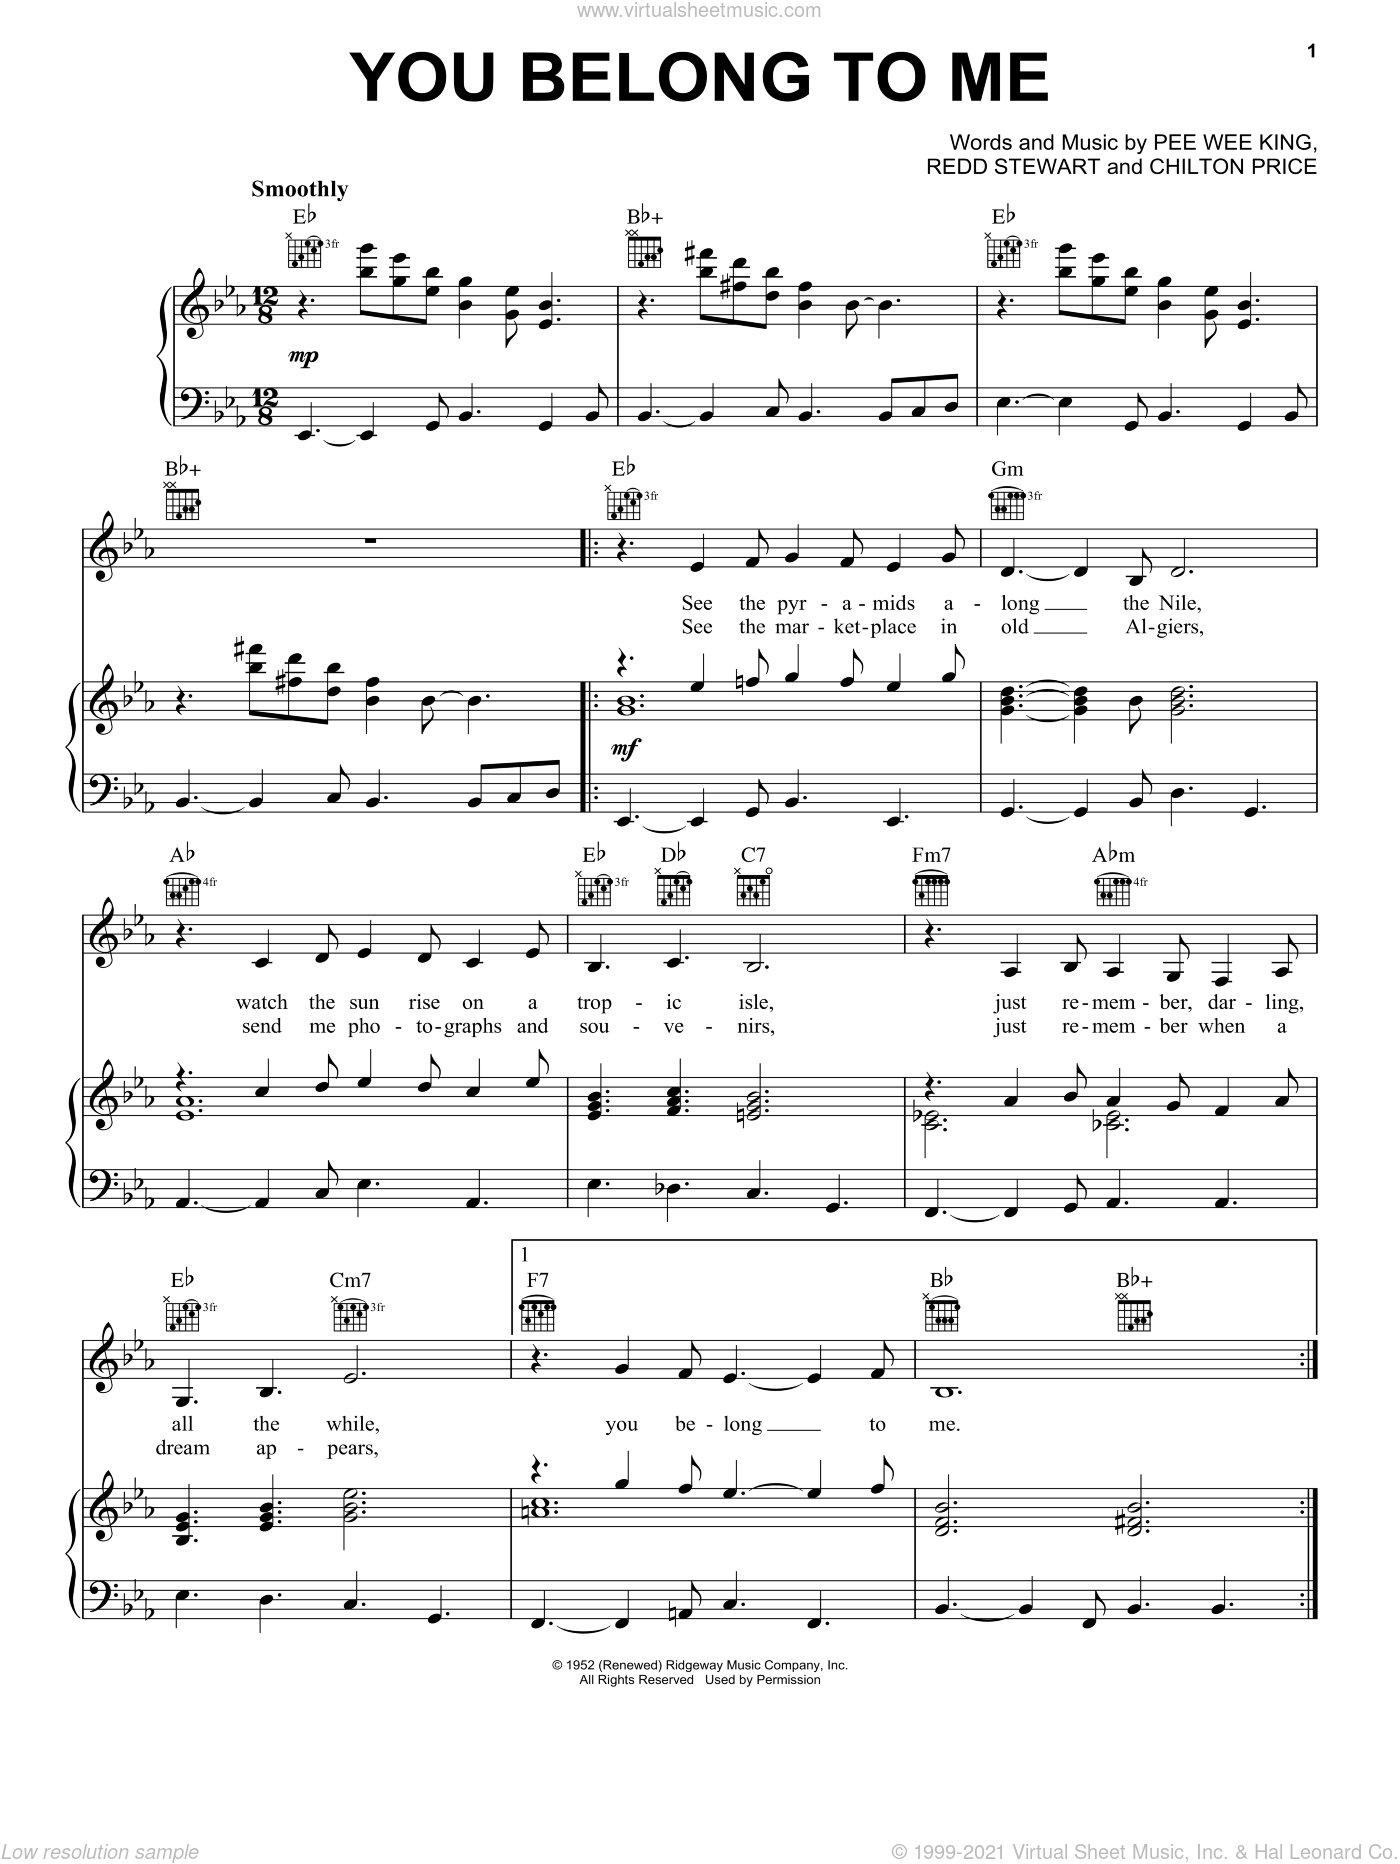 You Belong To Me sheet music for voice, piano or guitar by Patsy Cline, Dean Martin, Duprees, Chilton Price, Pee Wee King and Redd Stewart, intermediate skill level